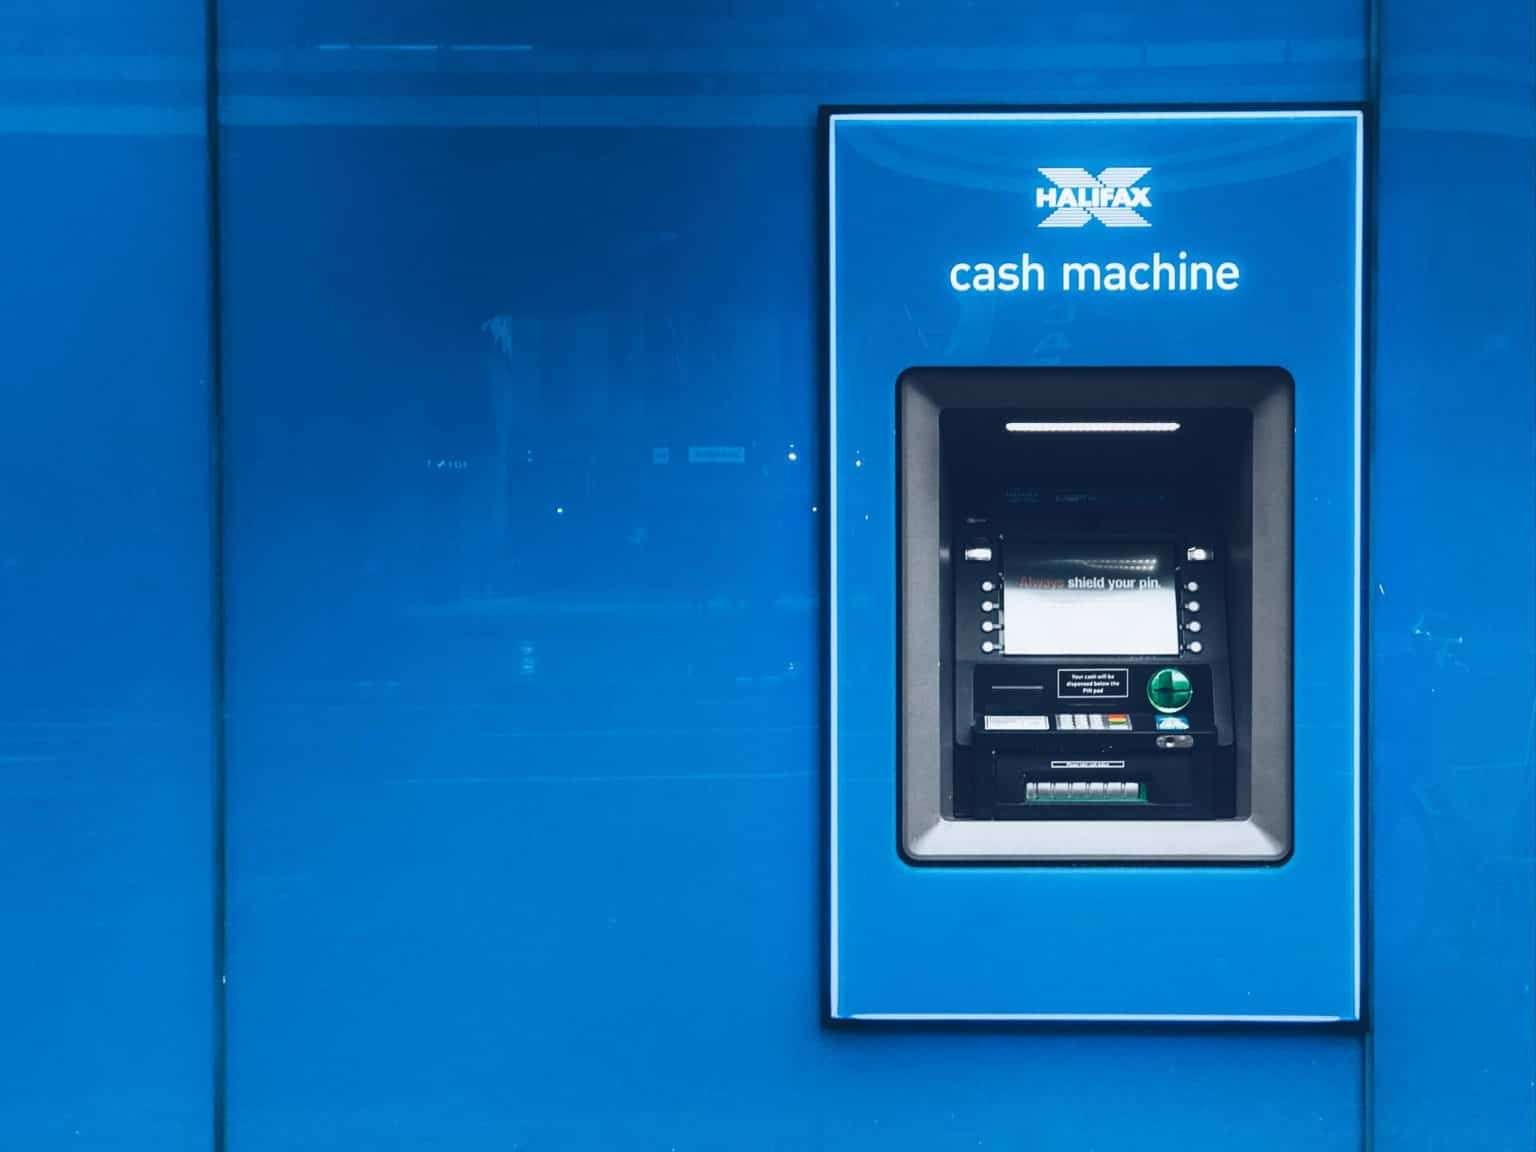 State Bank Of India Offers Visit Offer In 2020 Consulting Business Cash Machine Managing Finances